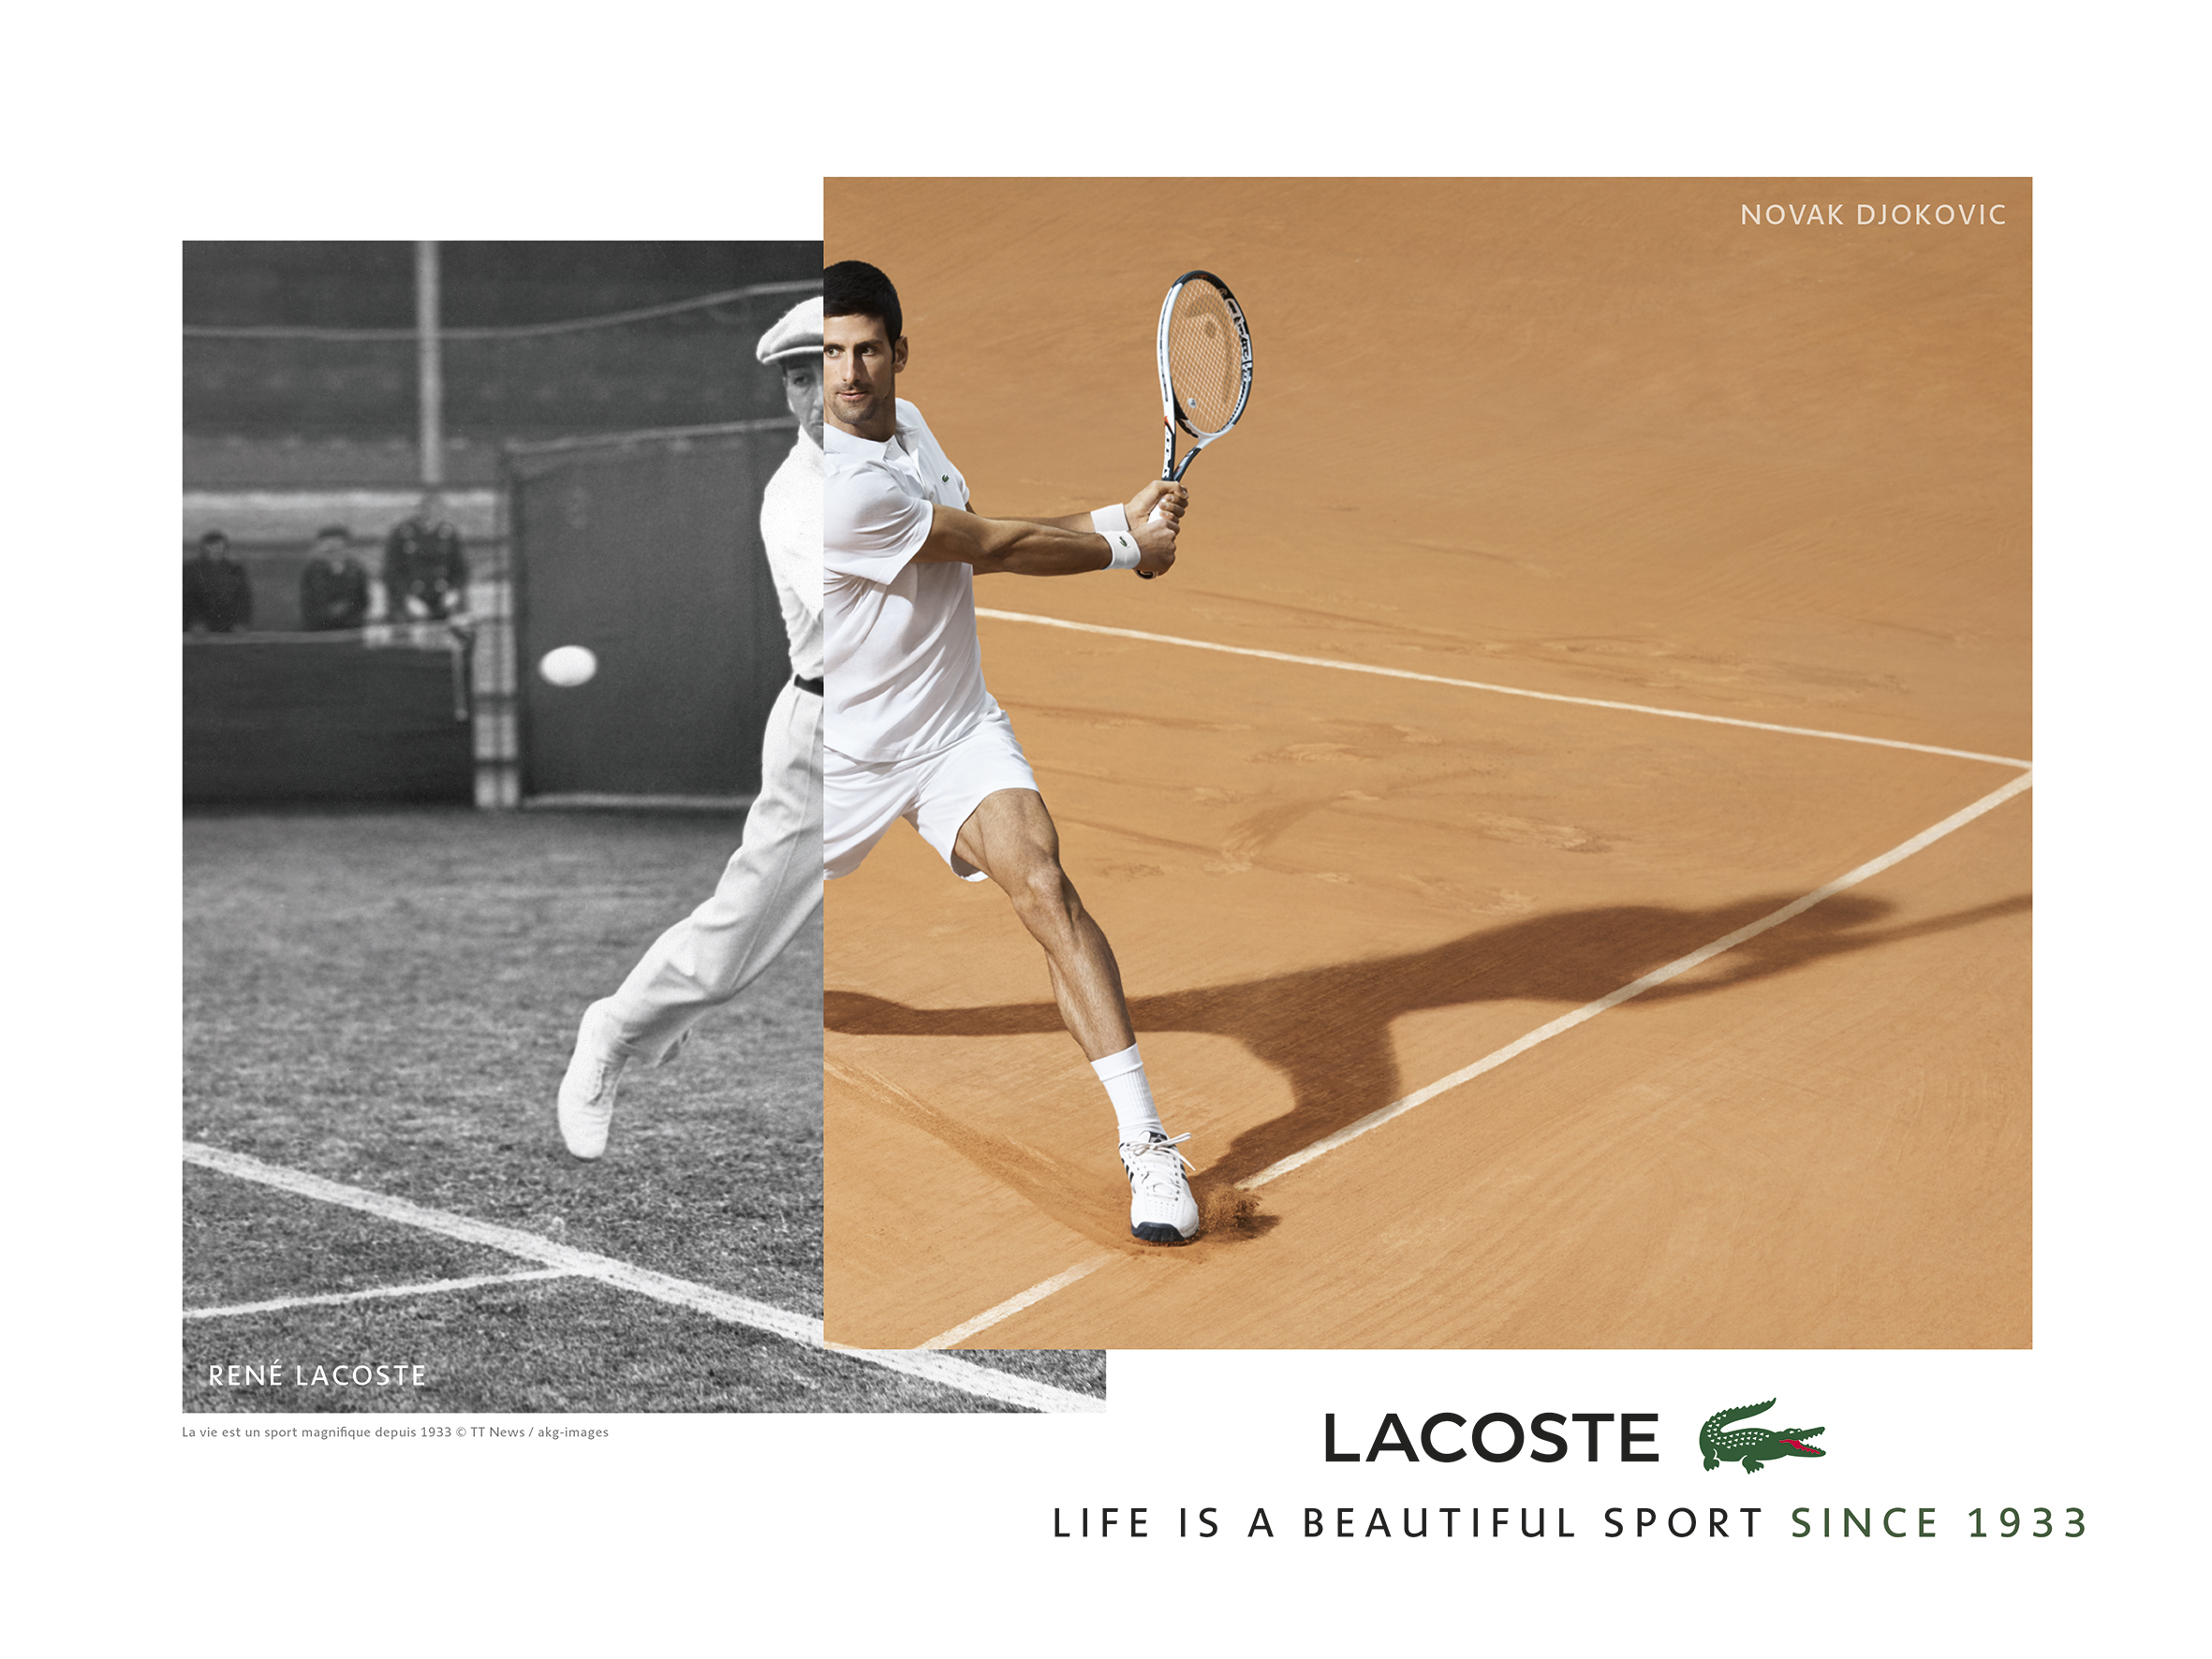 001_LACOSTE_NOVAK_DJOKOVIC_CAMPAIGN_∏ALL_RIGHTS_RESERVED